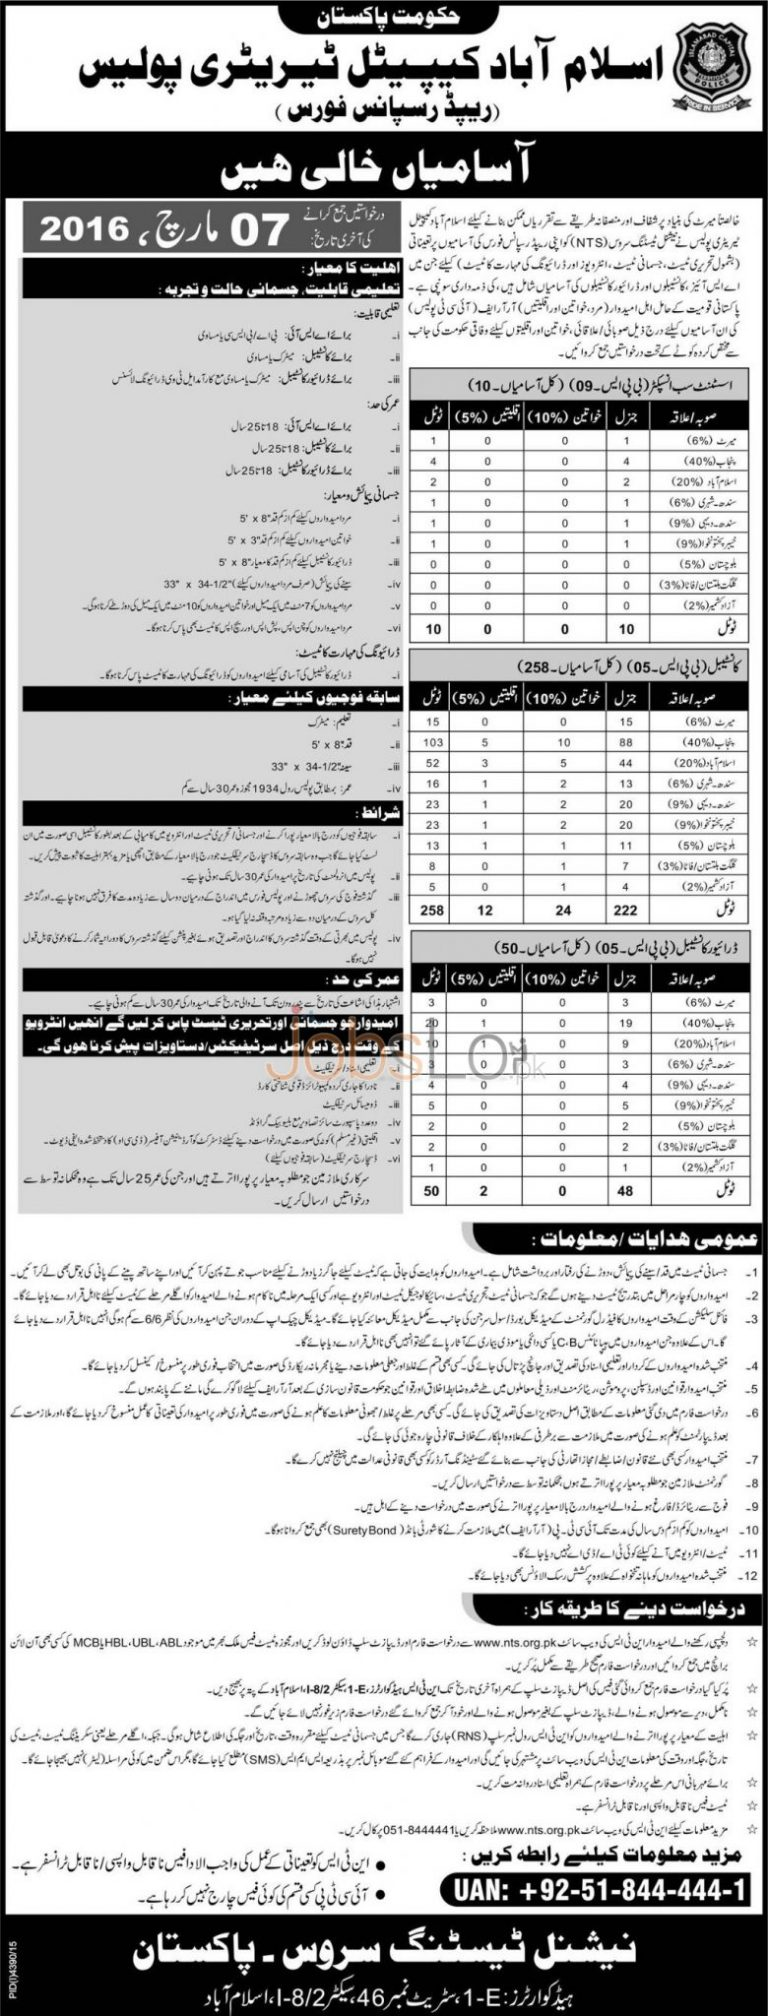 Islamabad Capital Territory Police Jobs 2016 NTS 10 ASI, 258 Constables & 50 Driver Constables